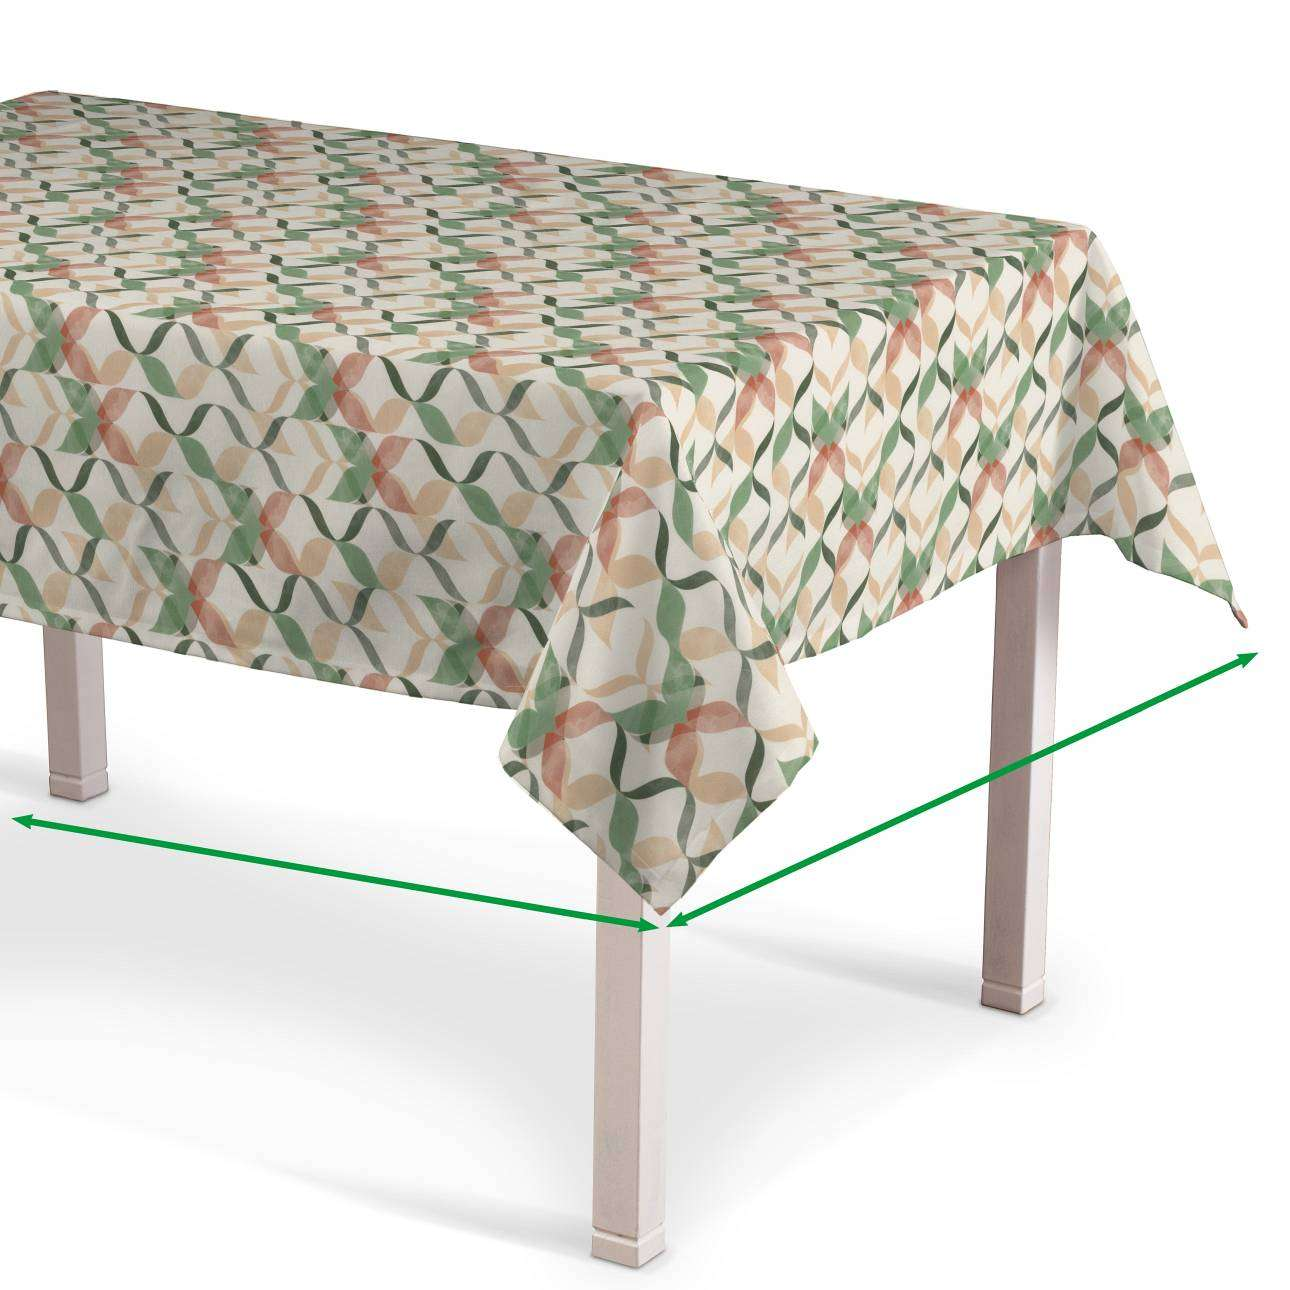 Rectangular tablecloth in collection Urban Jungle, fabric: 141-64